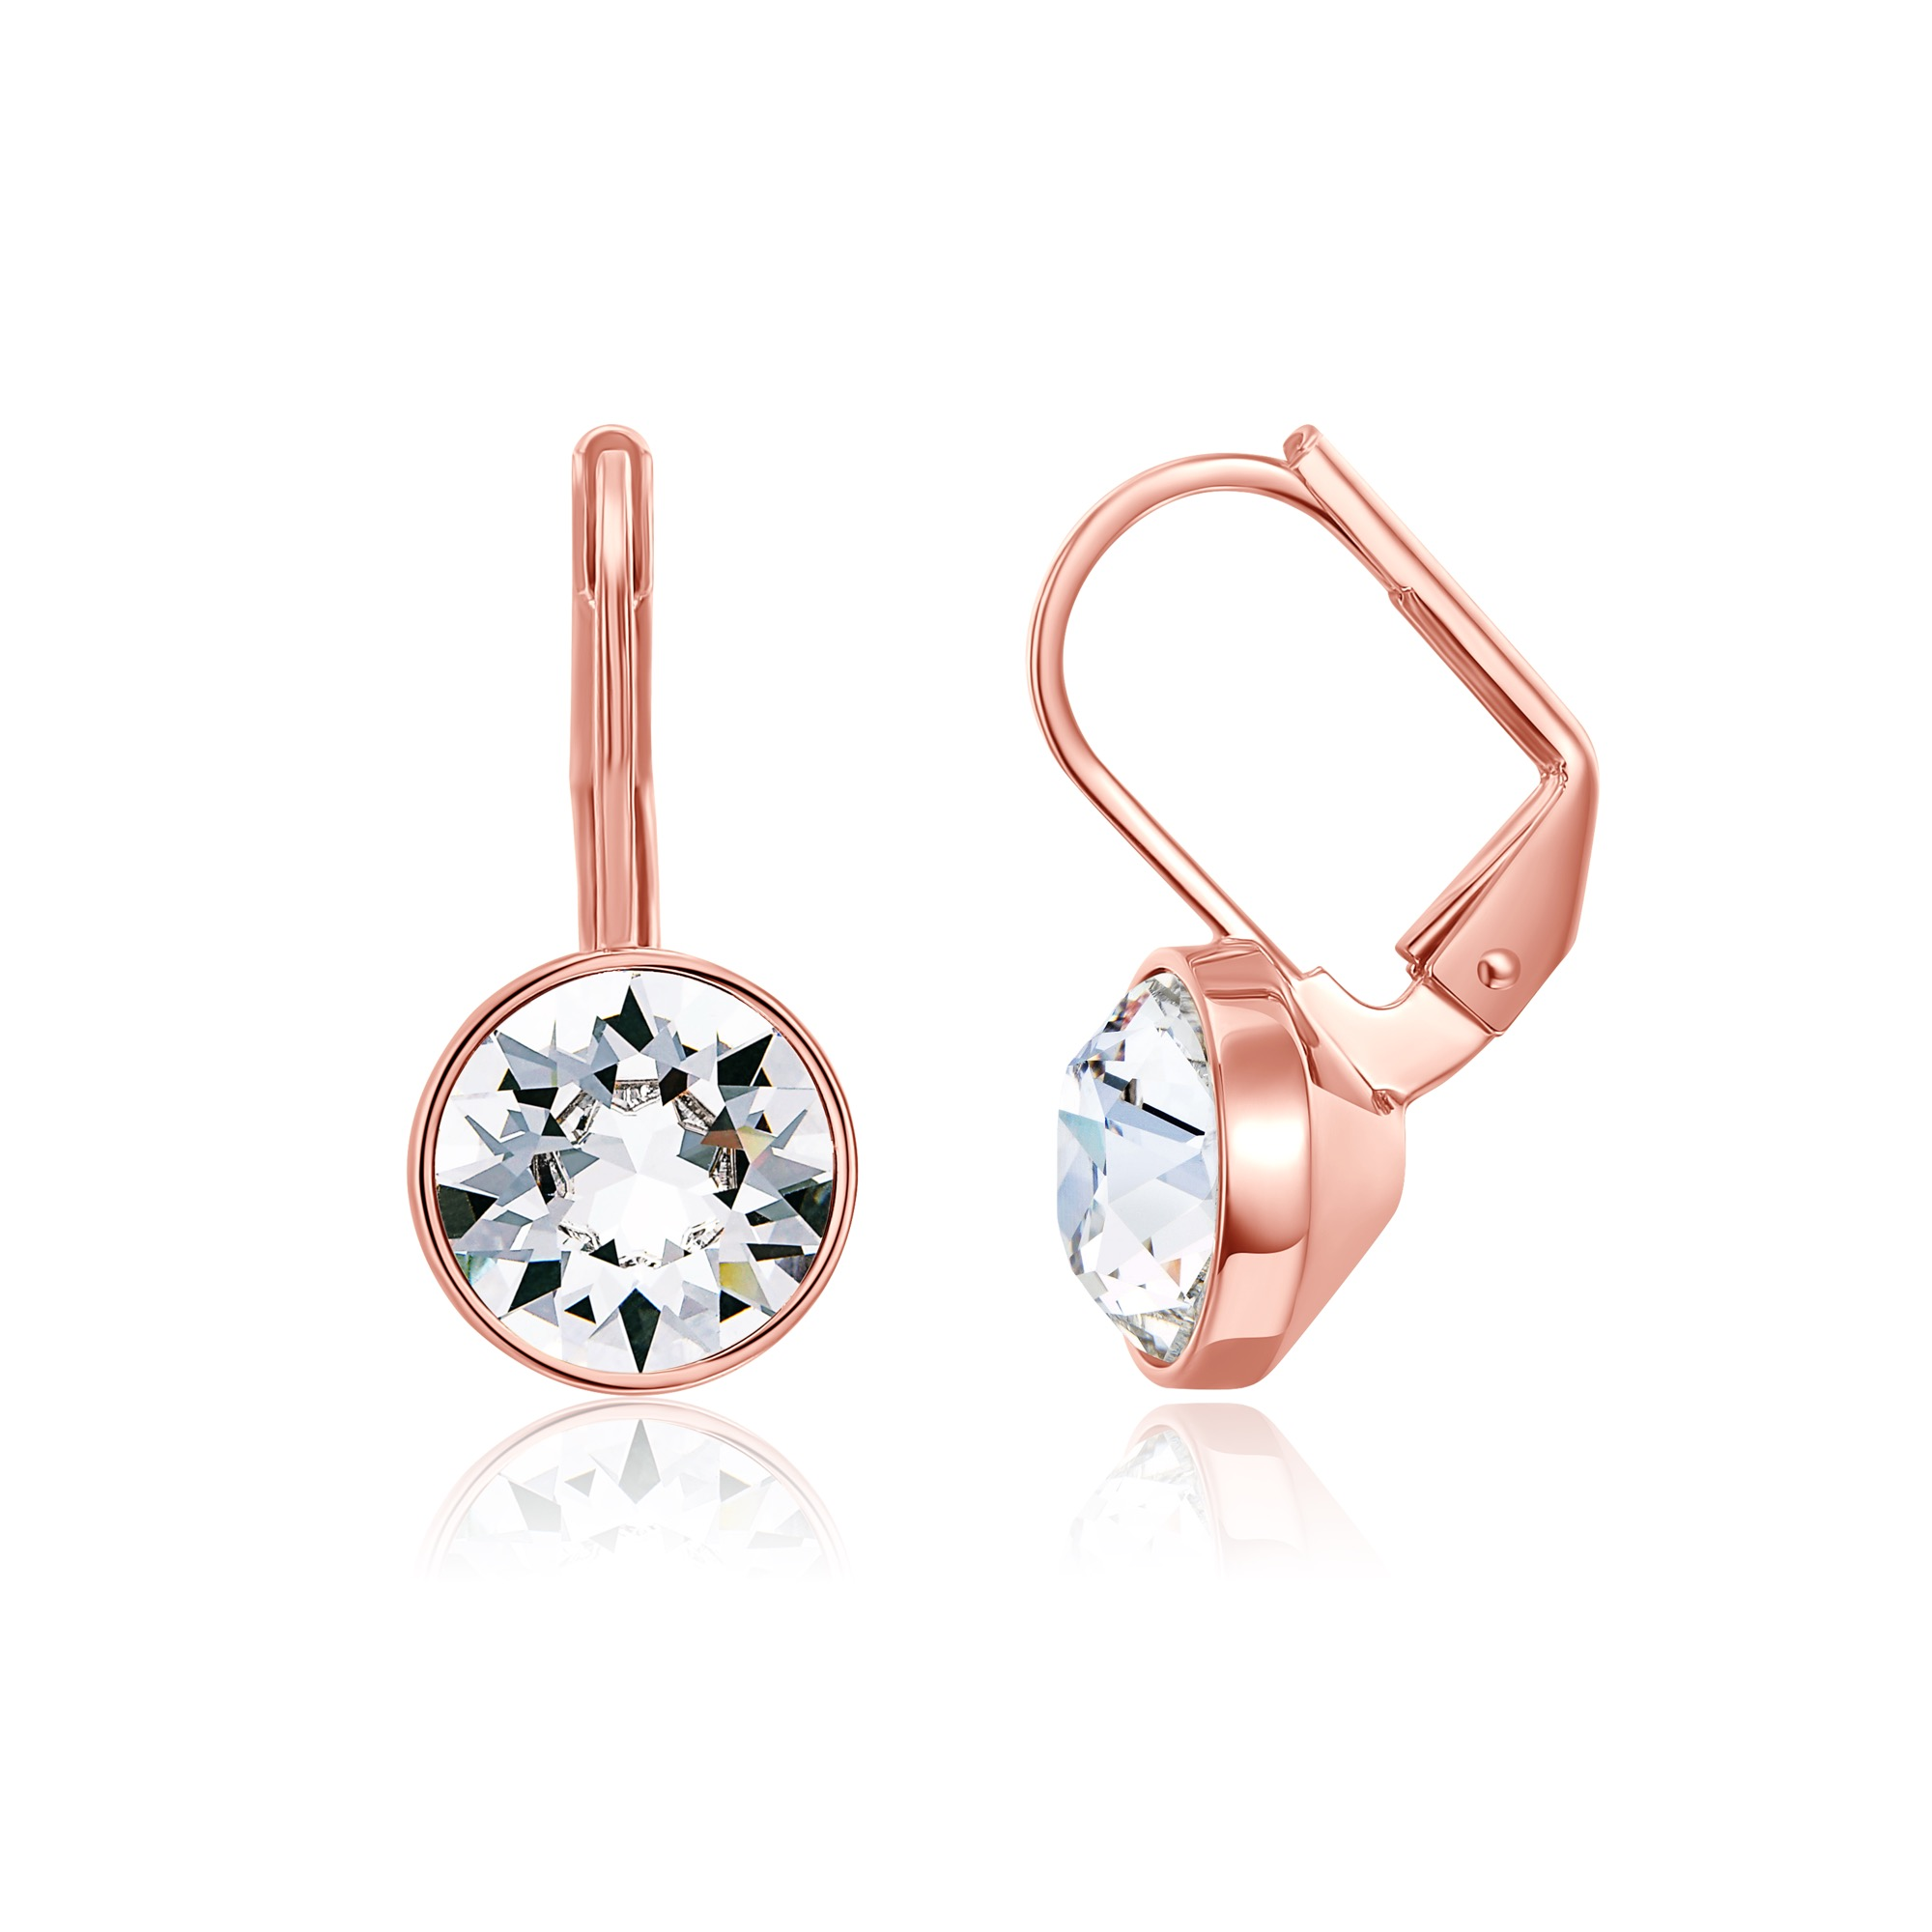 Bella Earrings with 2 Carat Clear Swarovski Crystals Rose Gold Pltd Bridal  Gift 7489a7b241